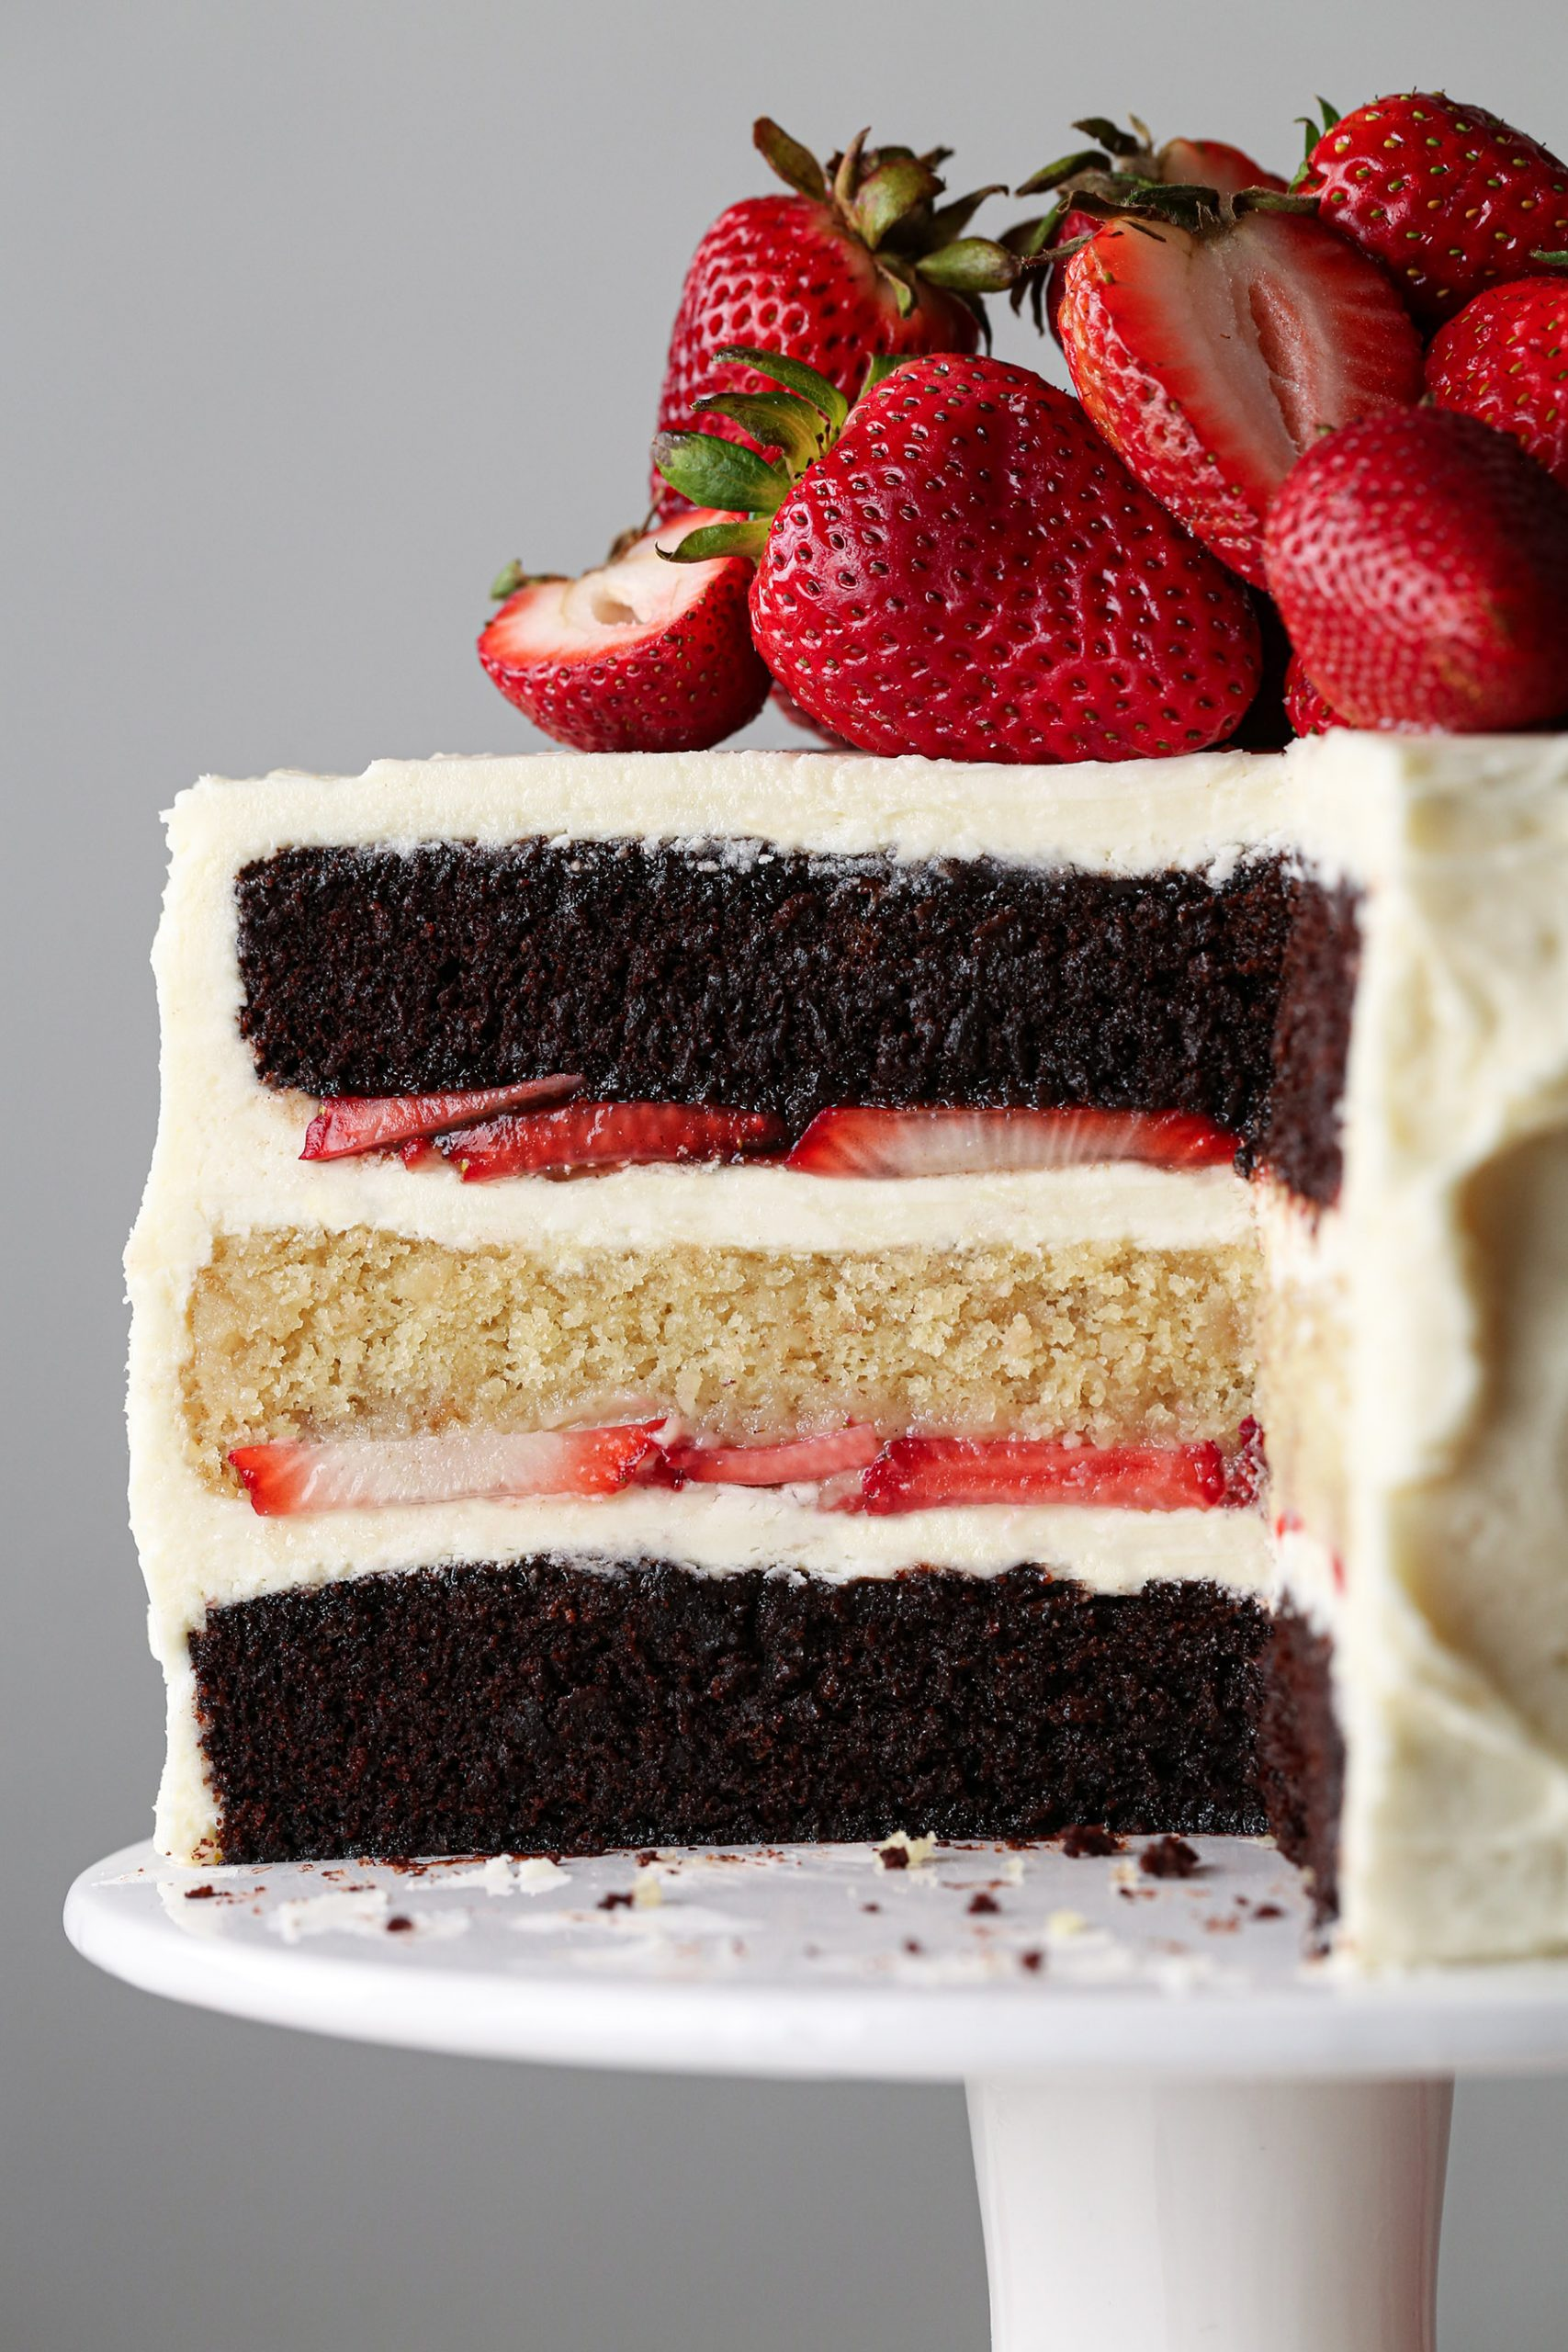 Neapolitan Cake with fresh strawberries, sliced and up close